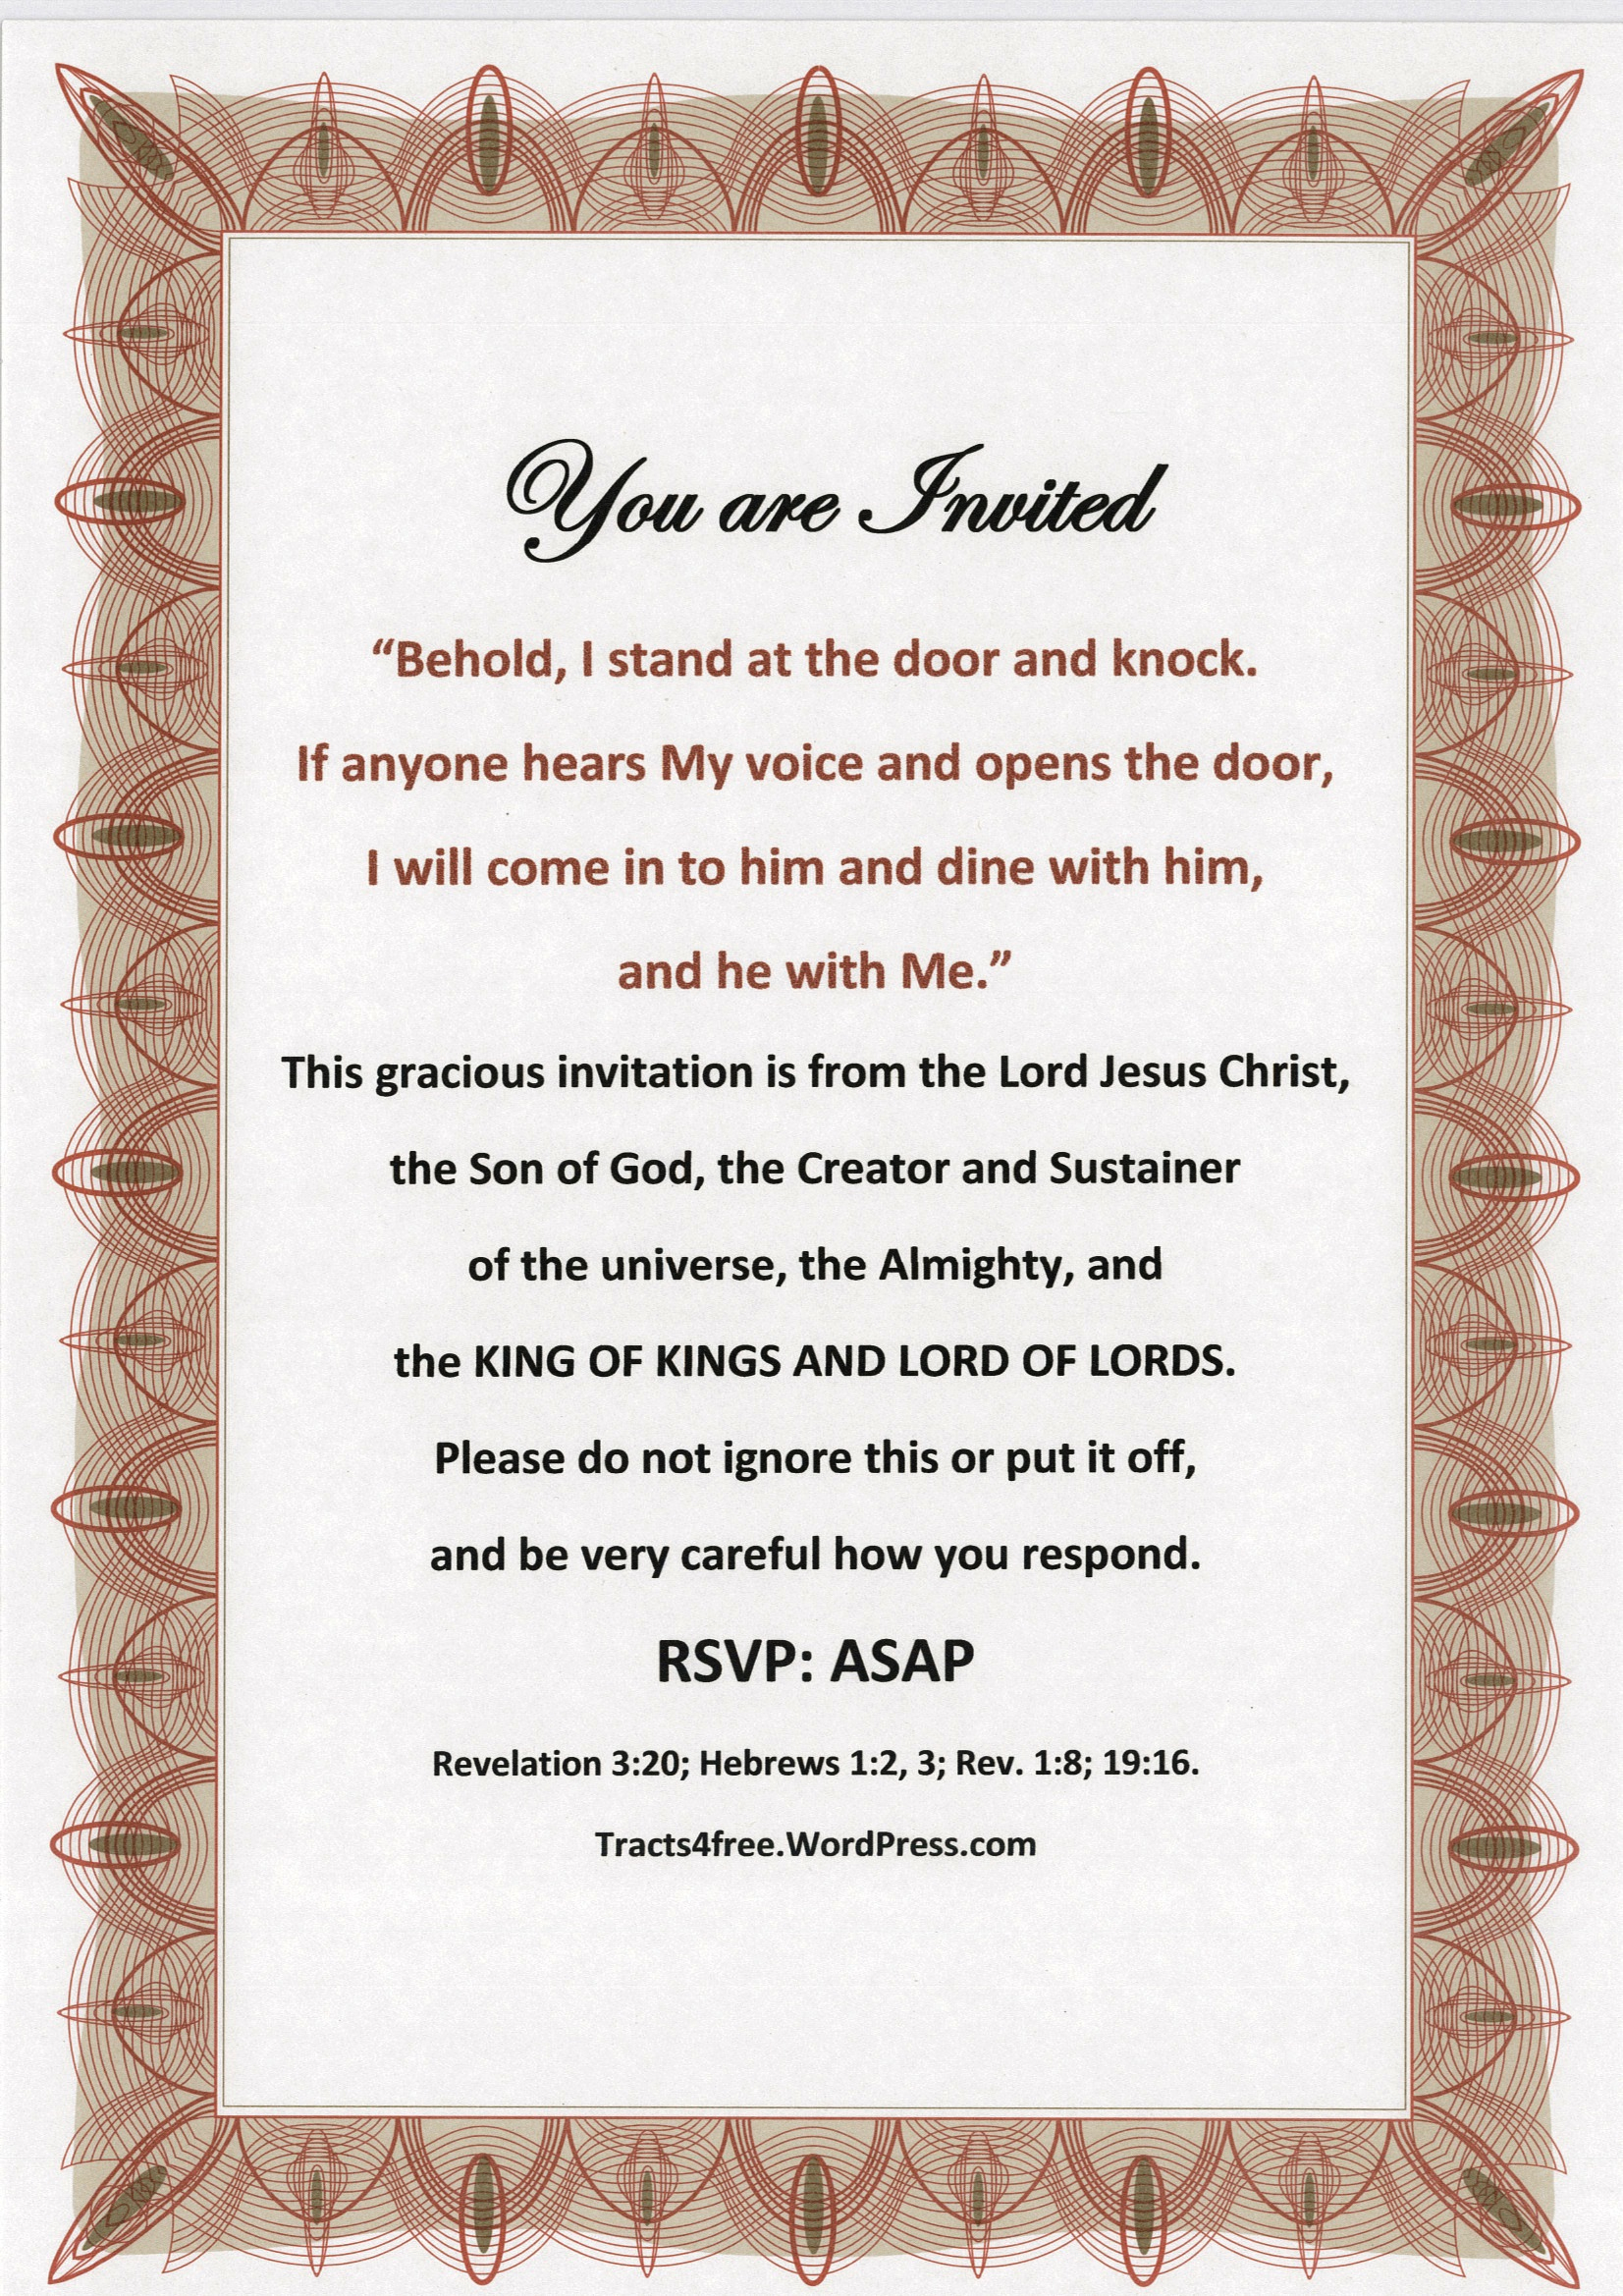 Tracts4Free | Downloadable Free Christian Tracts, Free Printable - Free Printable Tracts For Evangelism